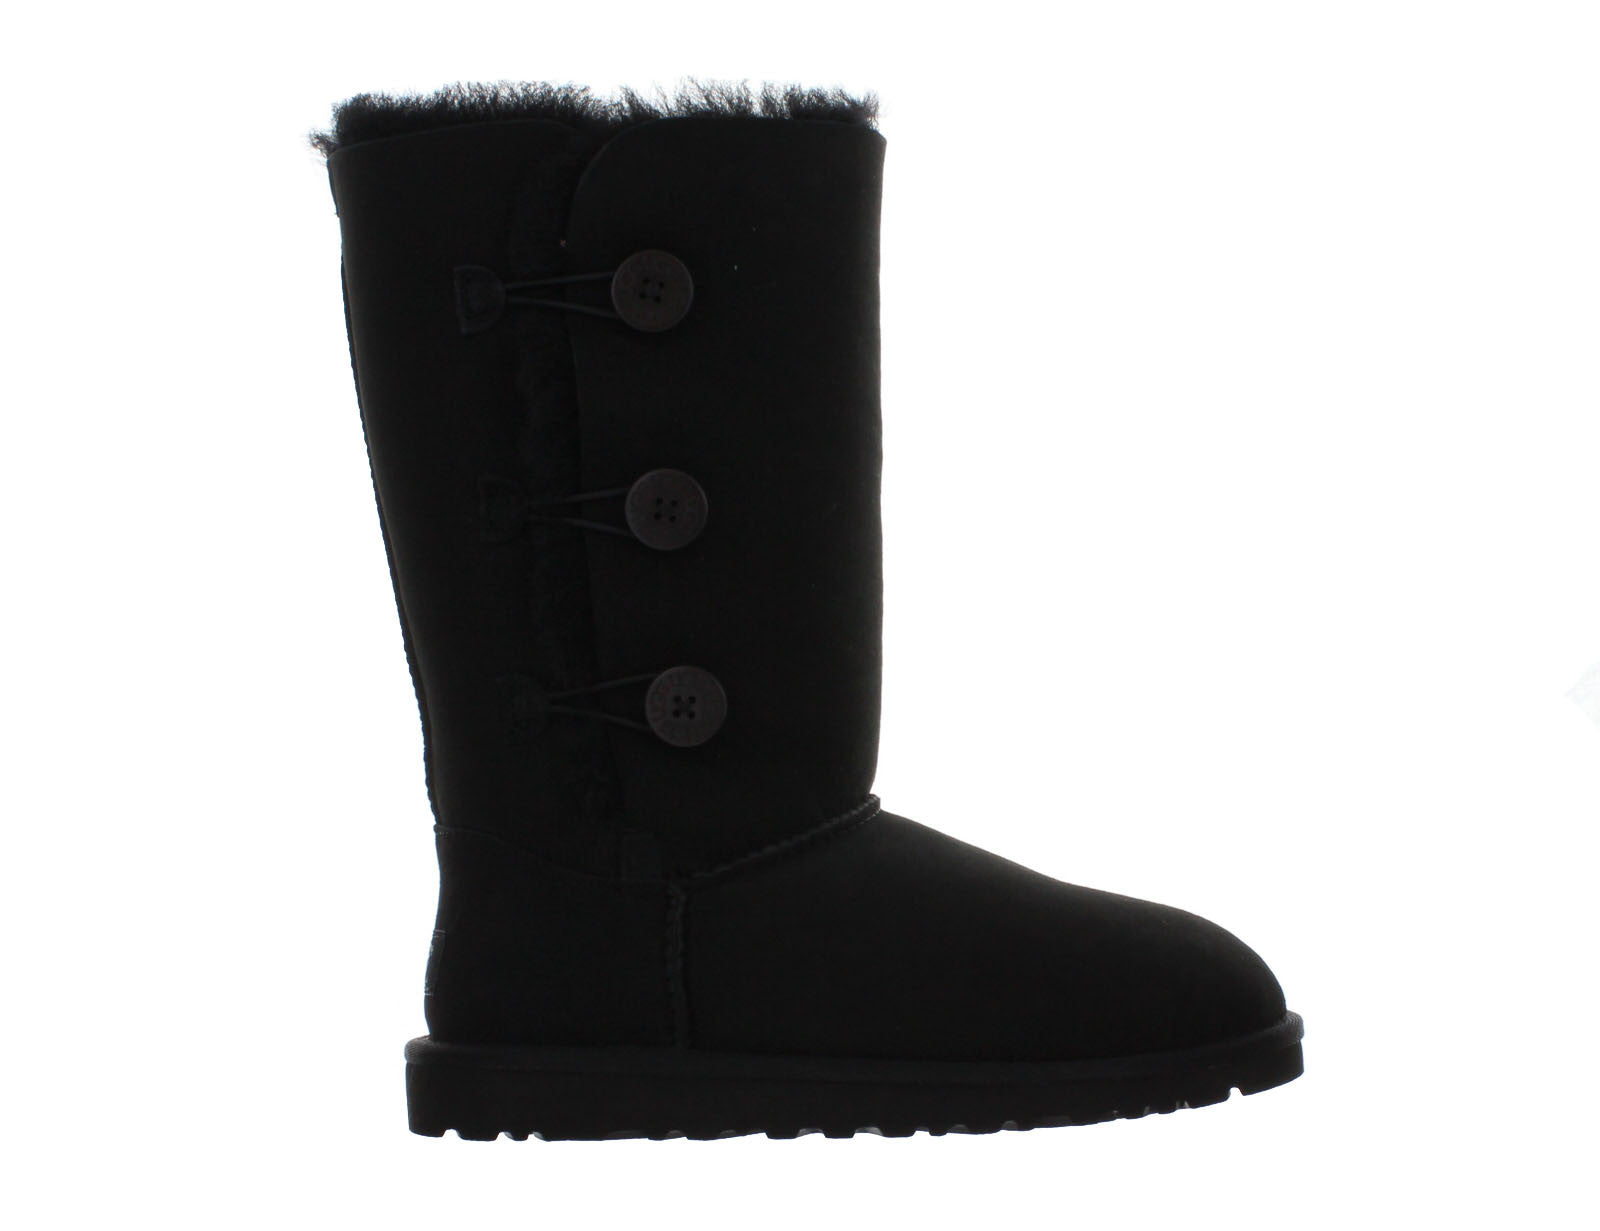 7a4befc0da ... canada cheap ugg boots outlet auckland cheap buy ugg boots brisbane  a6e4f a8380